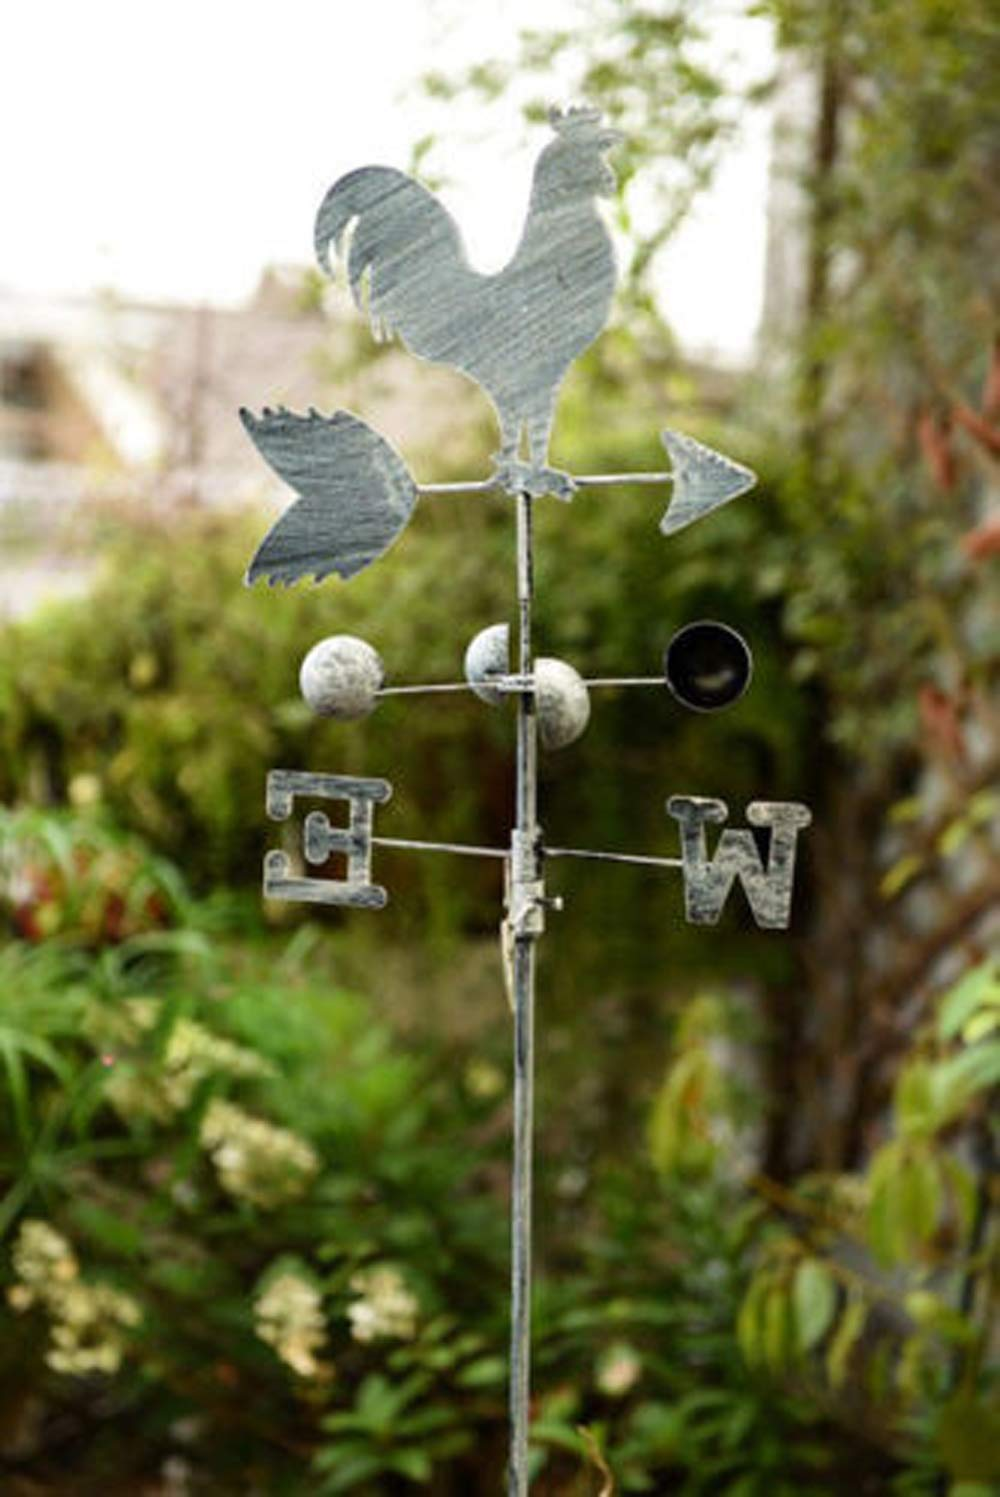 Retro Metal Weather Vane with Rooster Home Garden Decoration